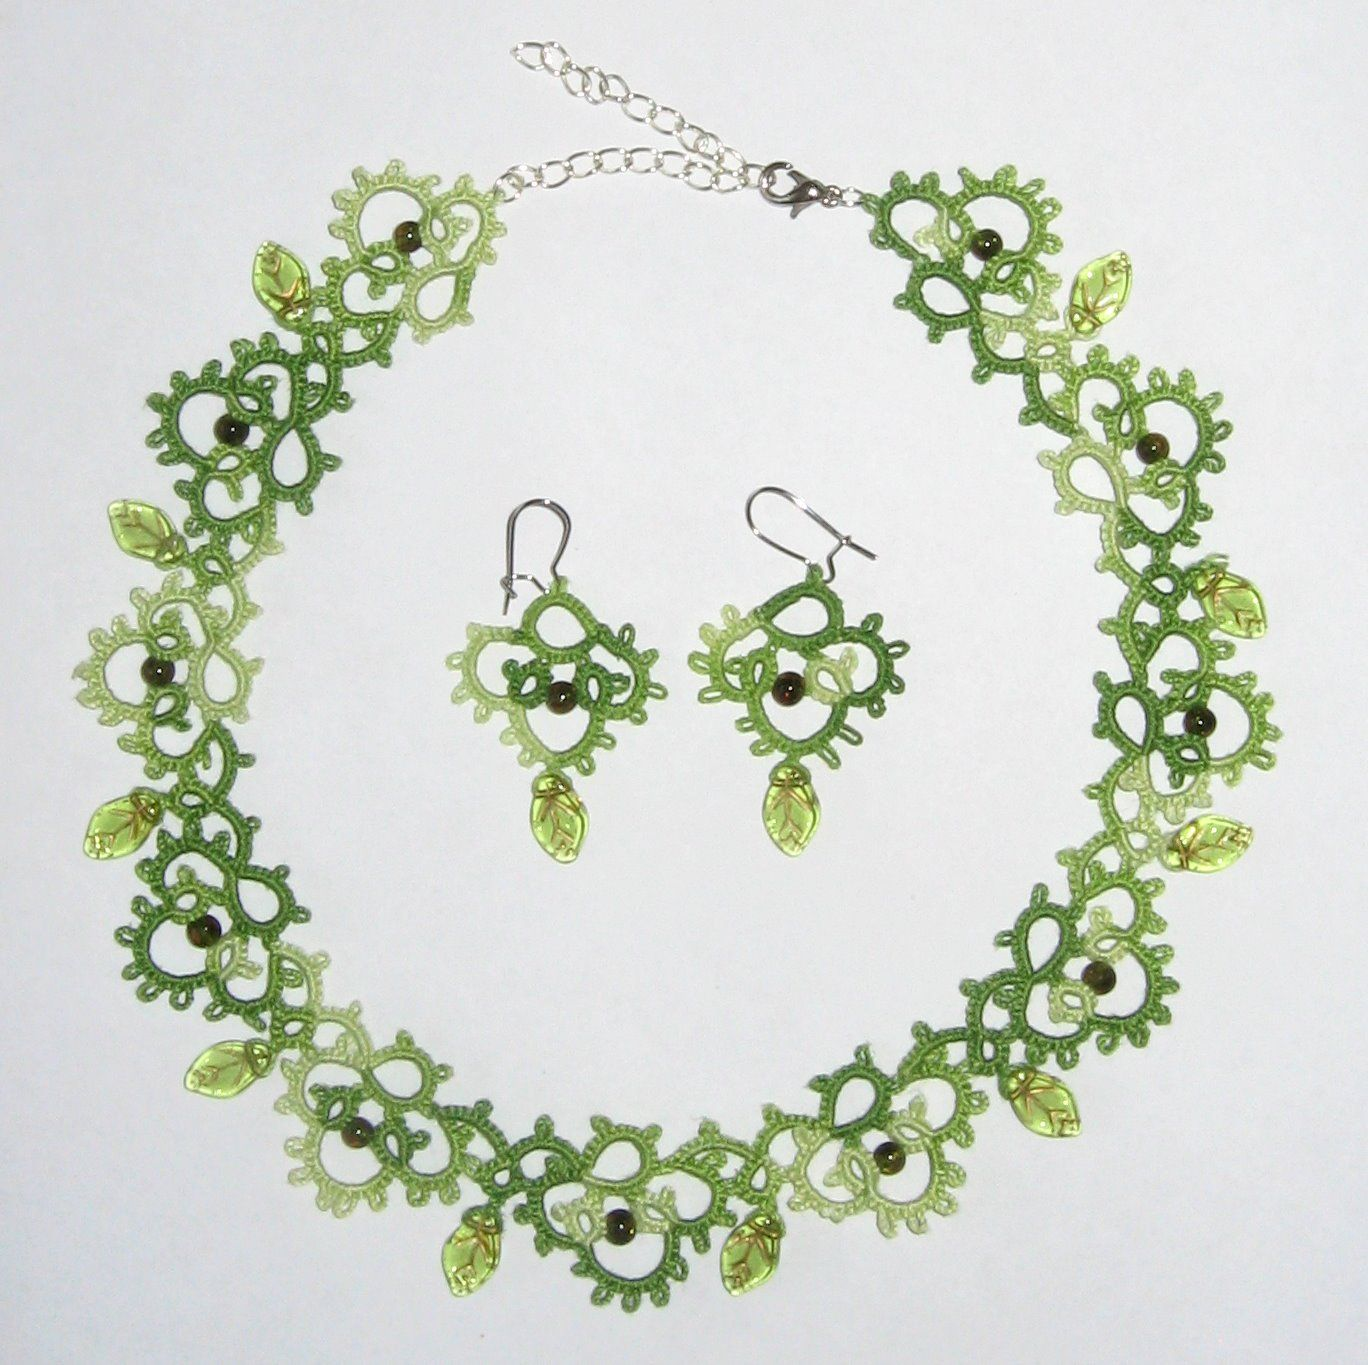 tatted jewelry   Green handmade necklace and earrings, retro lace and beads » Little ...